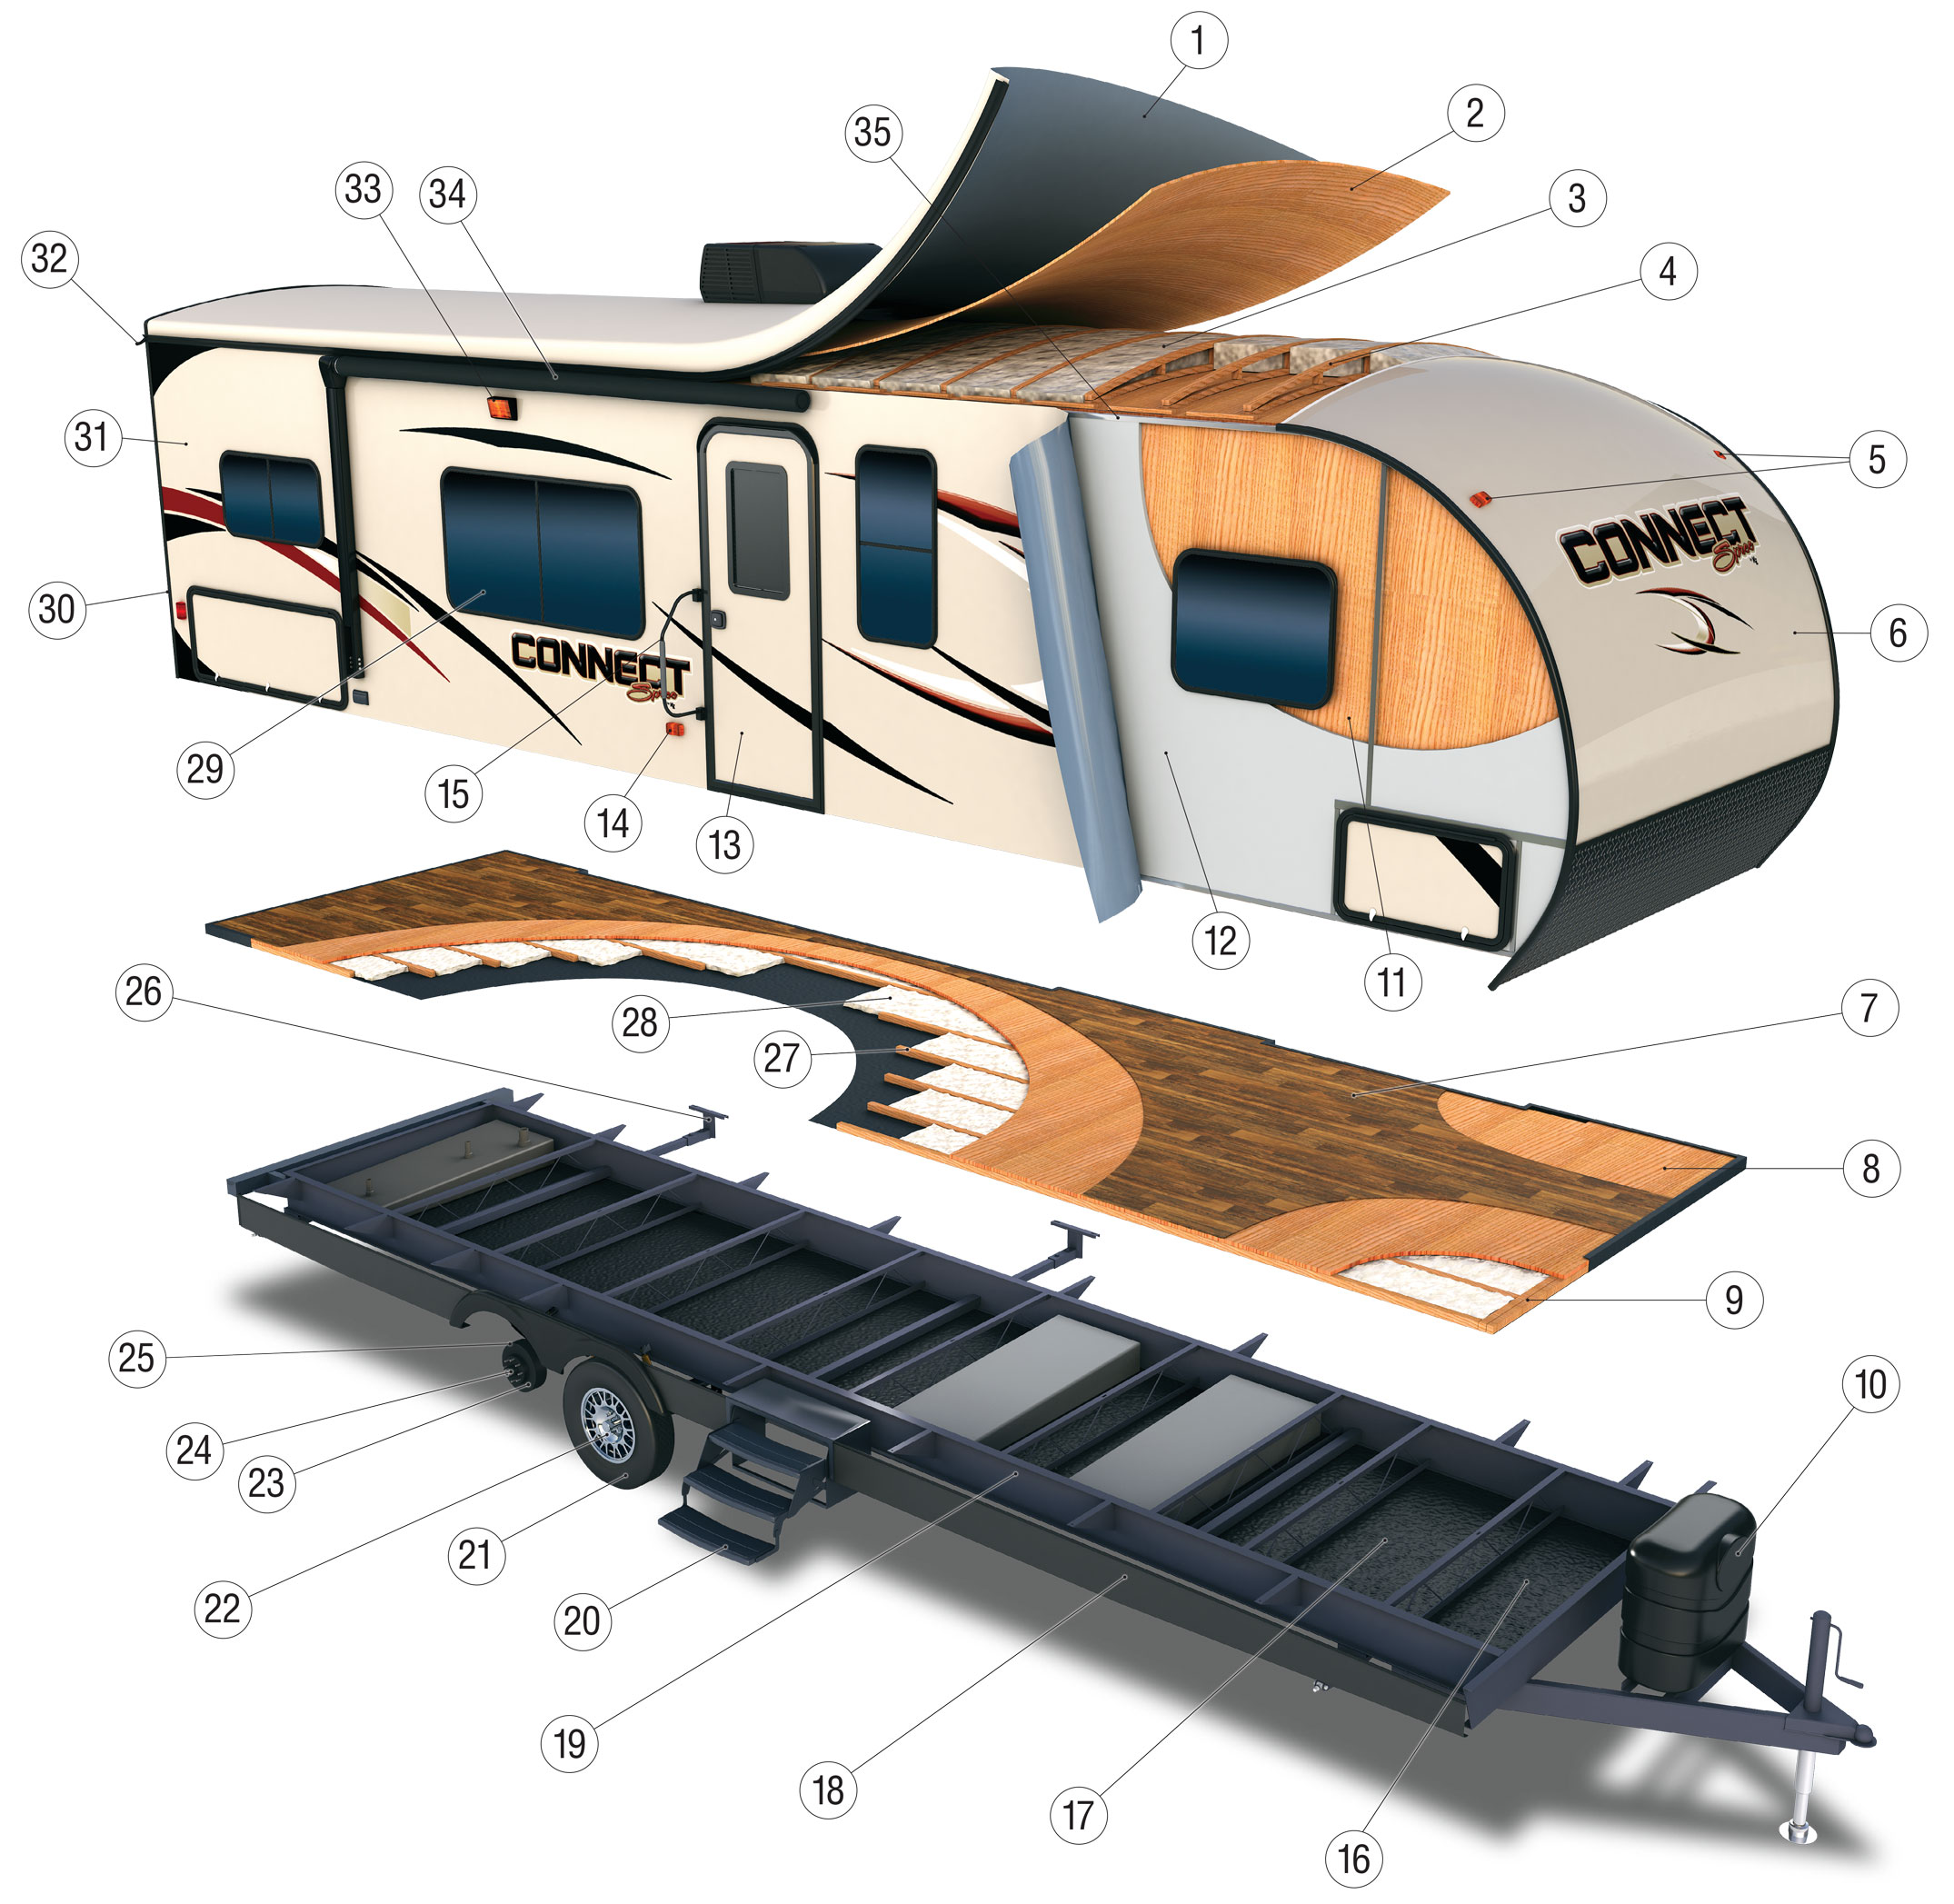 2016 Spree Connect Lightweight Travel Trailer Features | K-Z RV